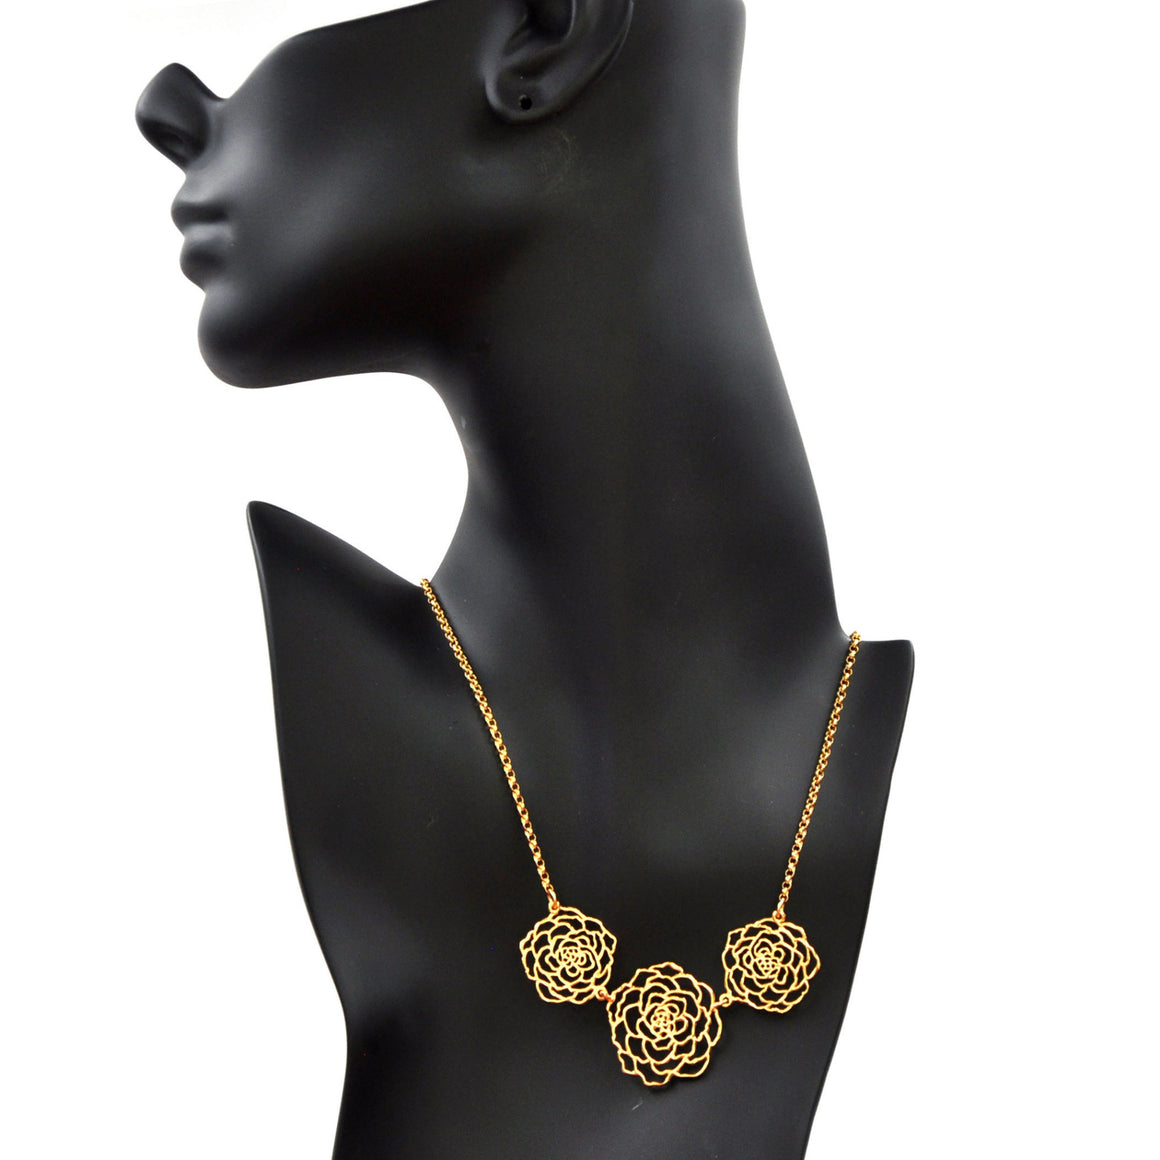 Rose Three Blooms Necklace - 24K Gold Plated